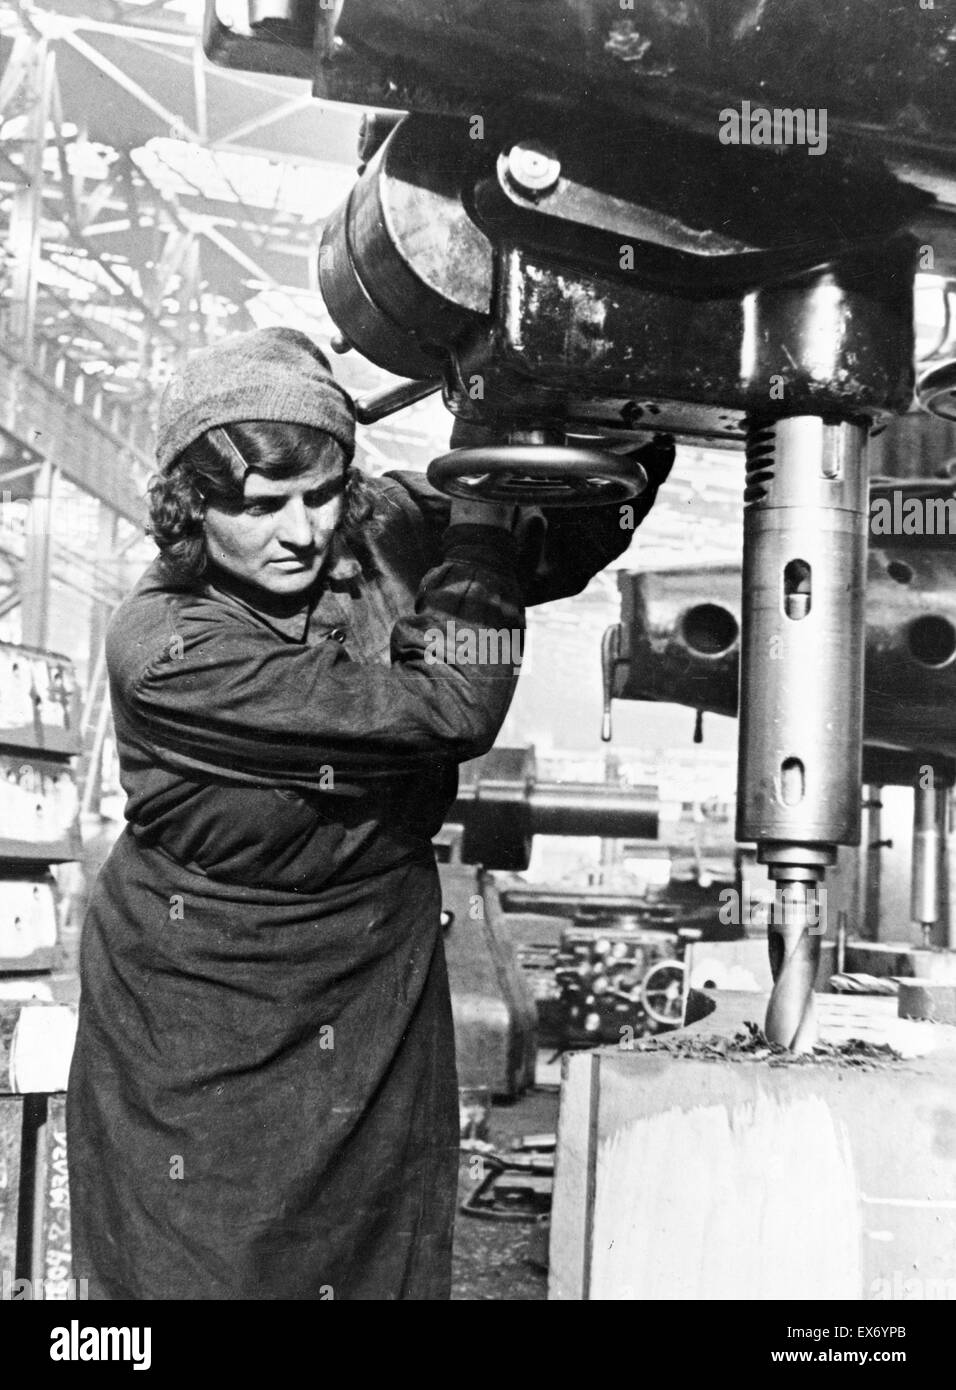 Moscow's factories, where thousands of women replaced men during World War Two. - Stock Image